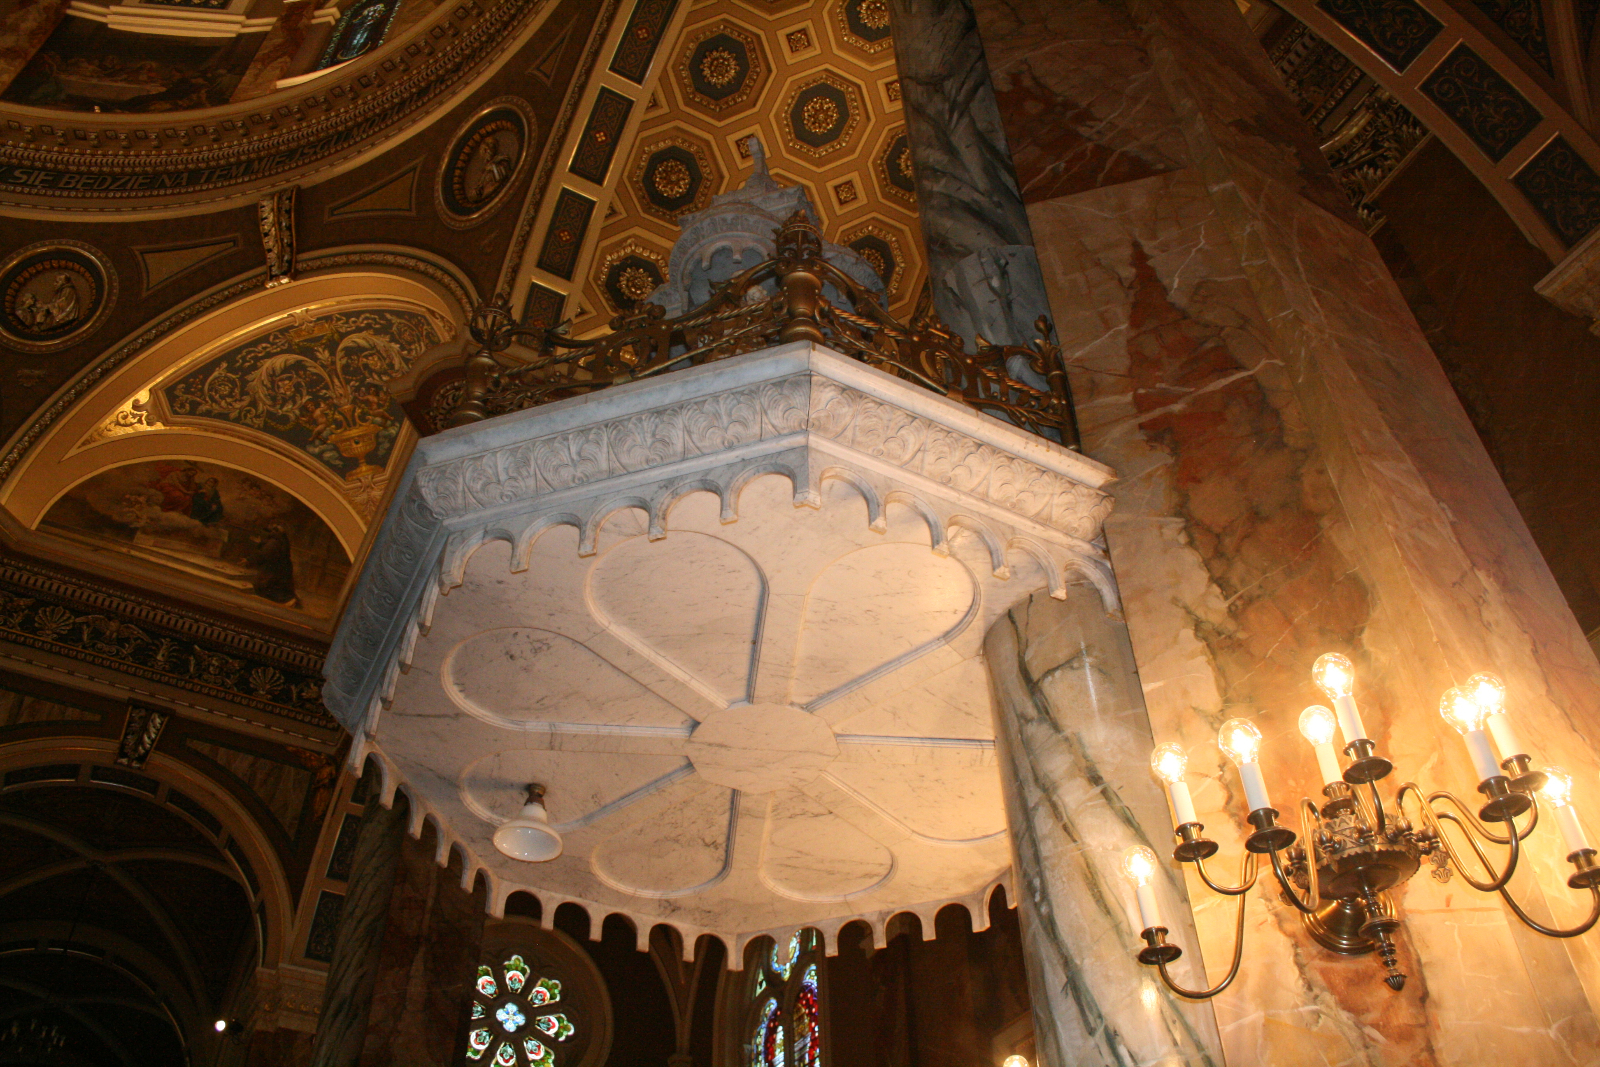 The top of the Pulpit is suspended in air.